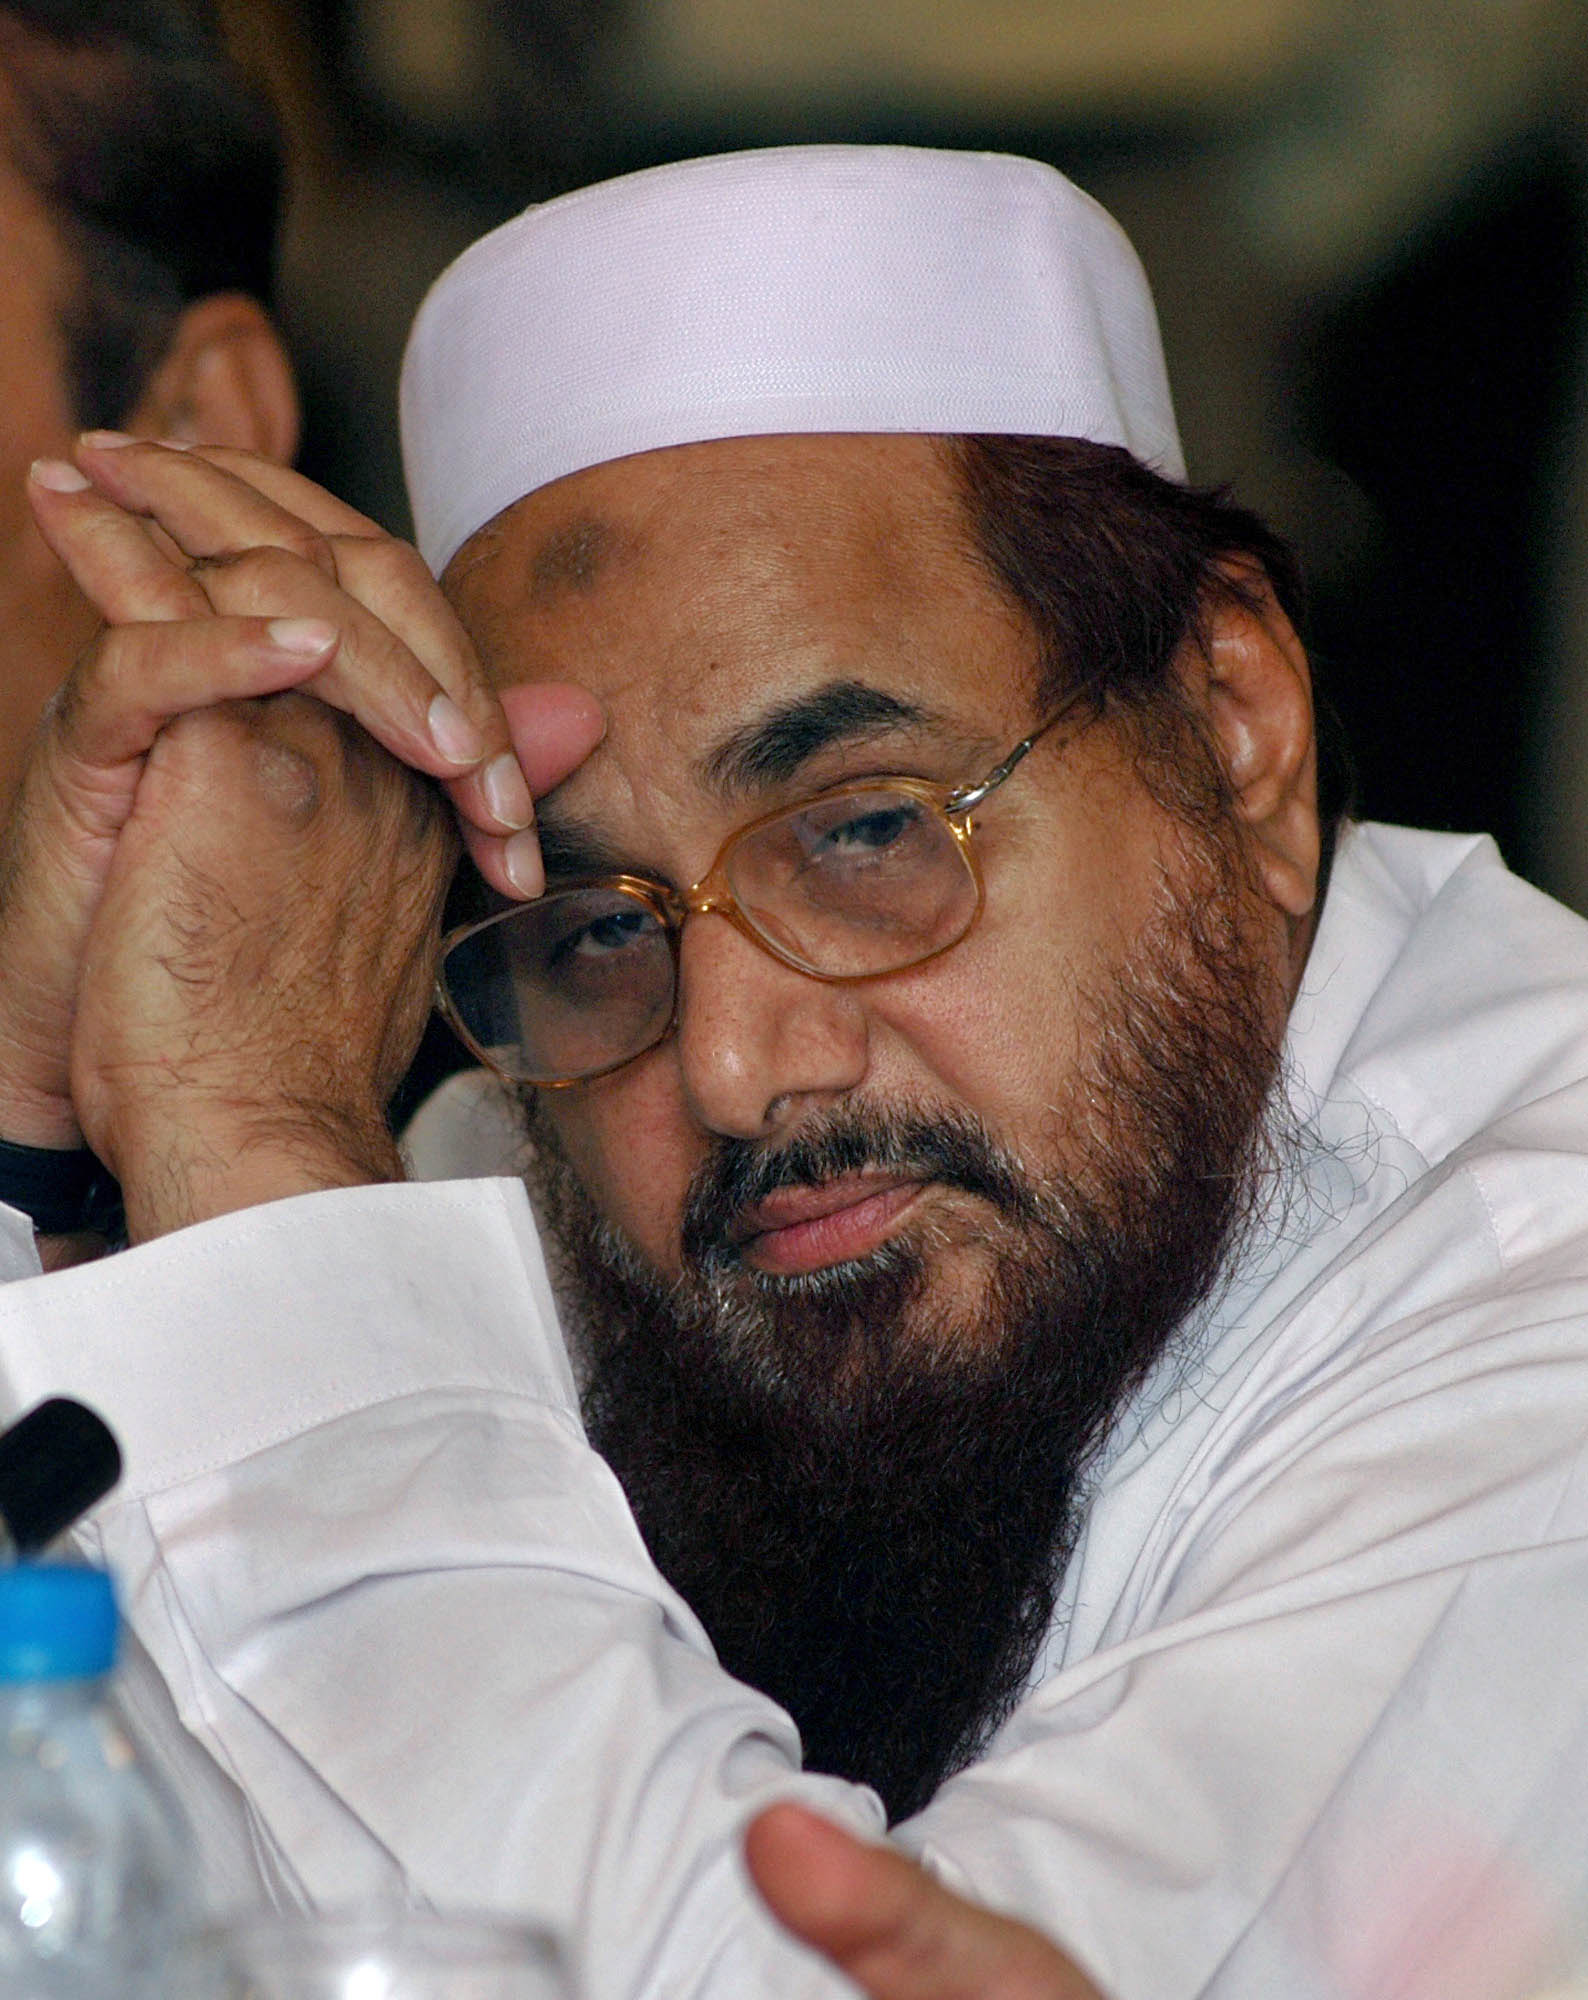 Hafiz Saeed is the co-founder of the Lashkar-e-Toiba, which was responsible for the Mumbai terror attacks in 2008.